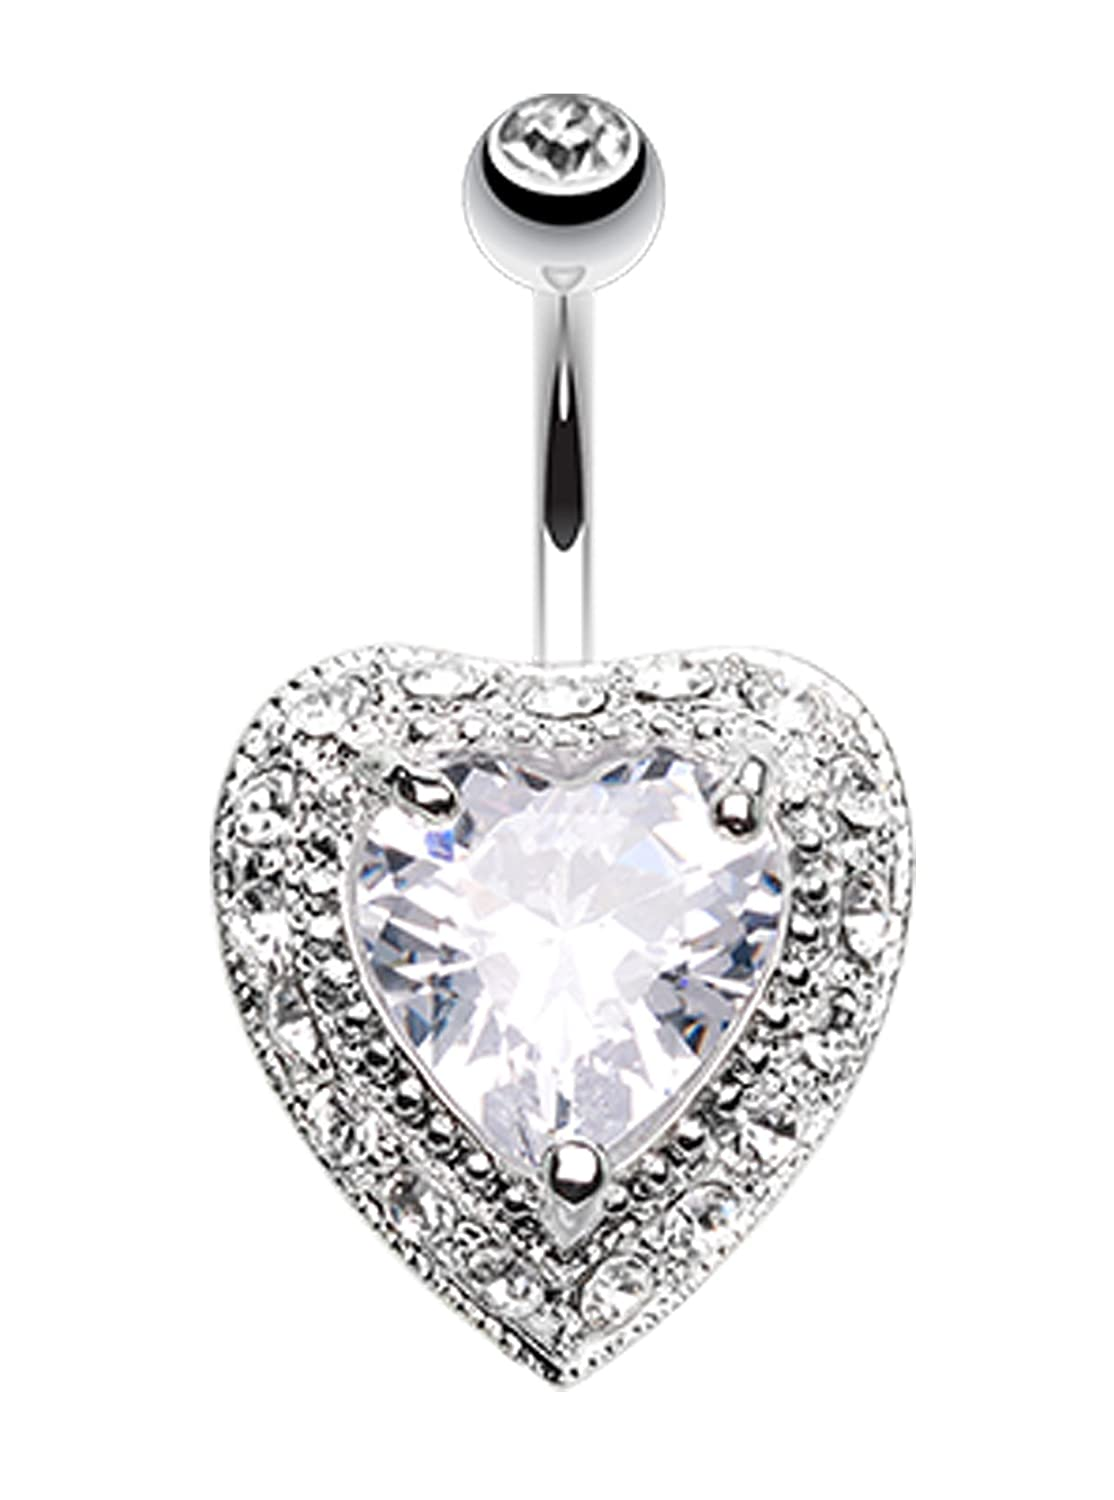 14 GA 1.6mm - Sold Individually Heart Extravagant Belly Button Ring